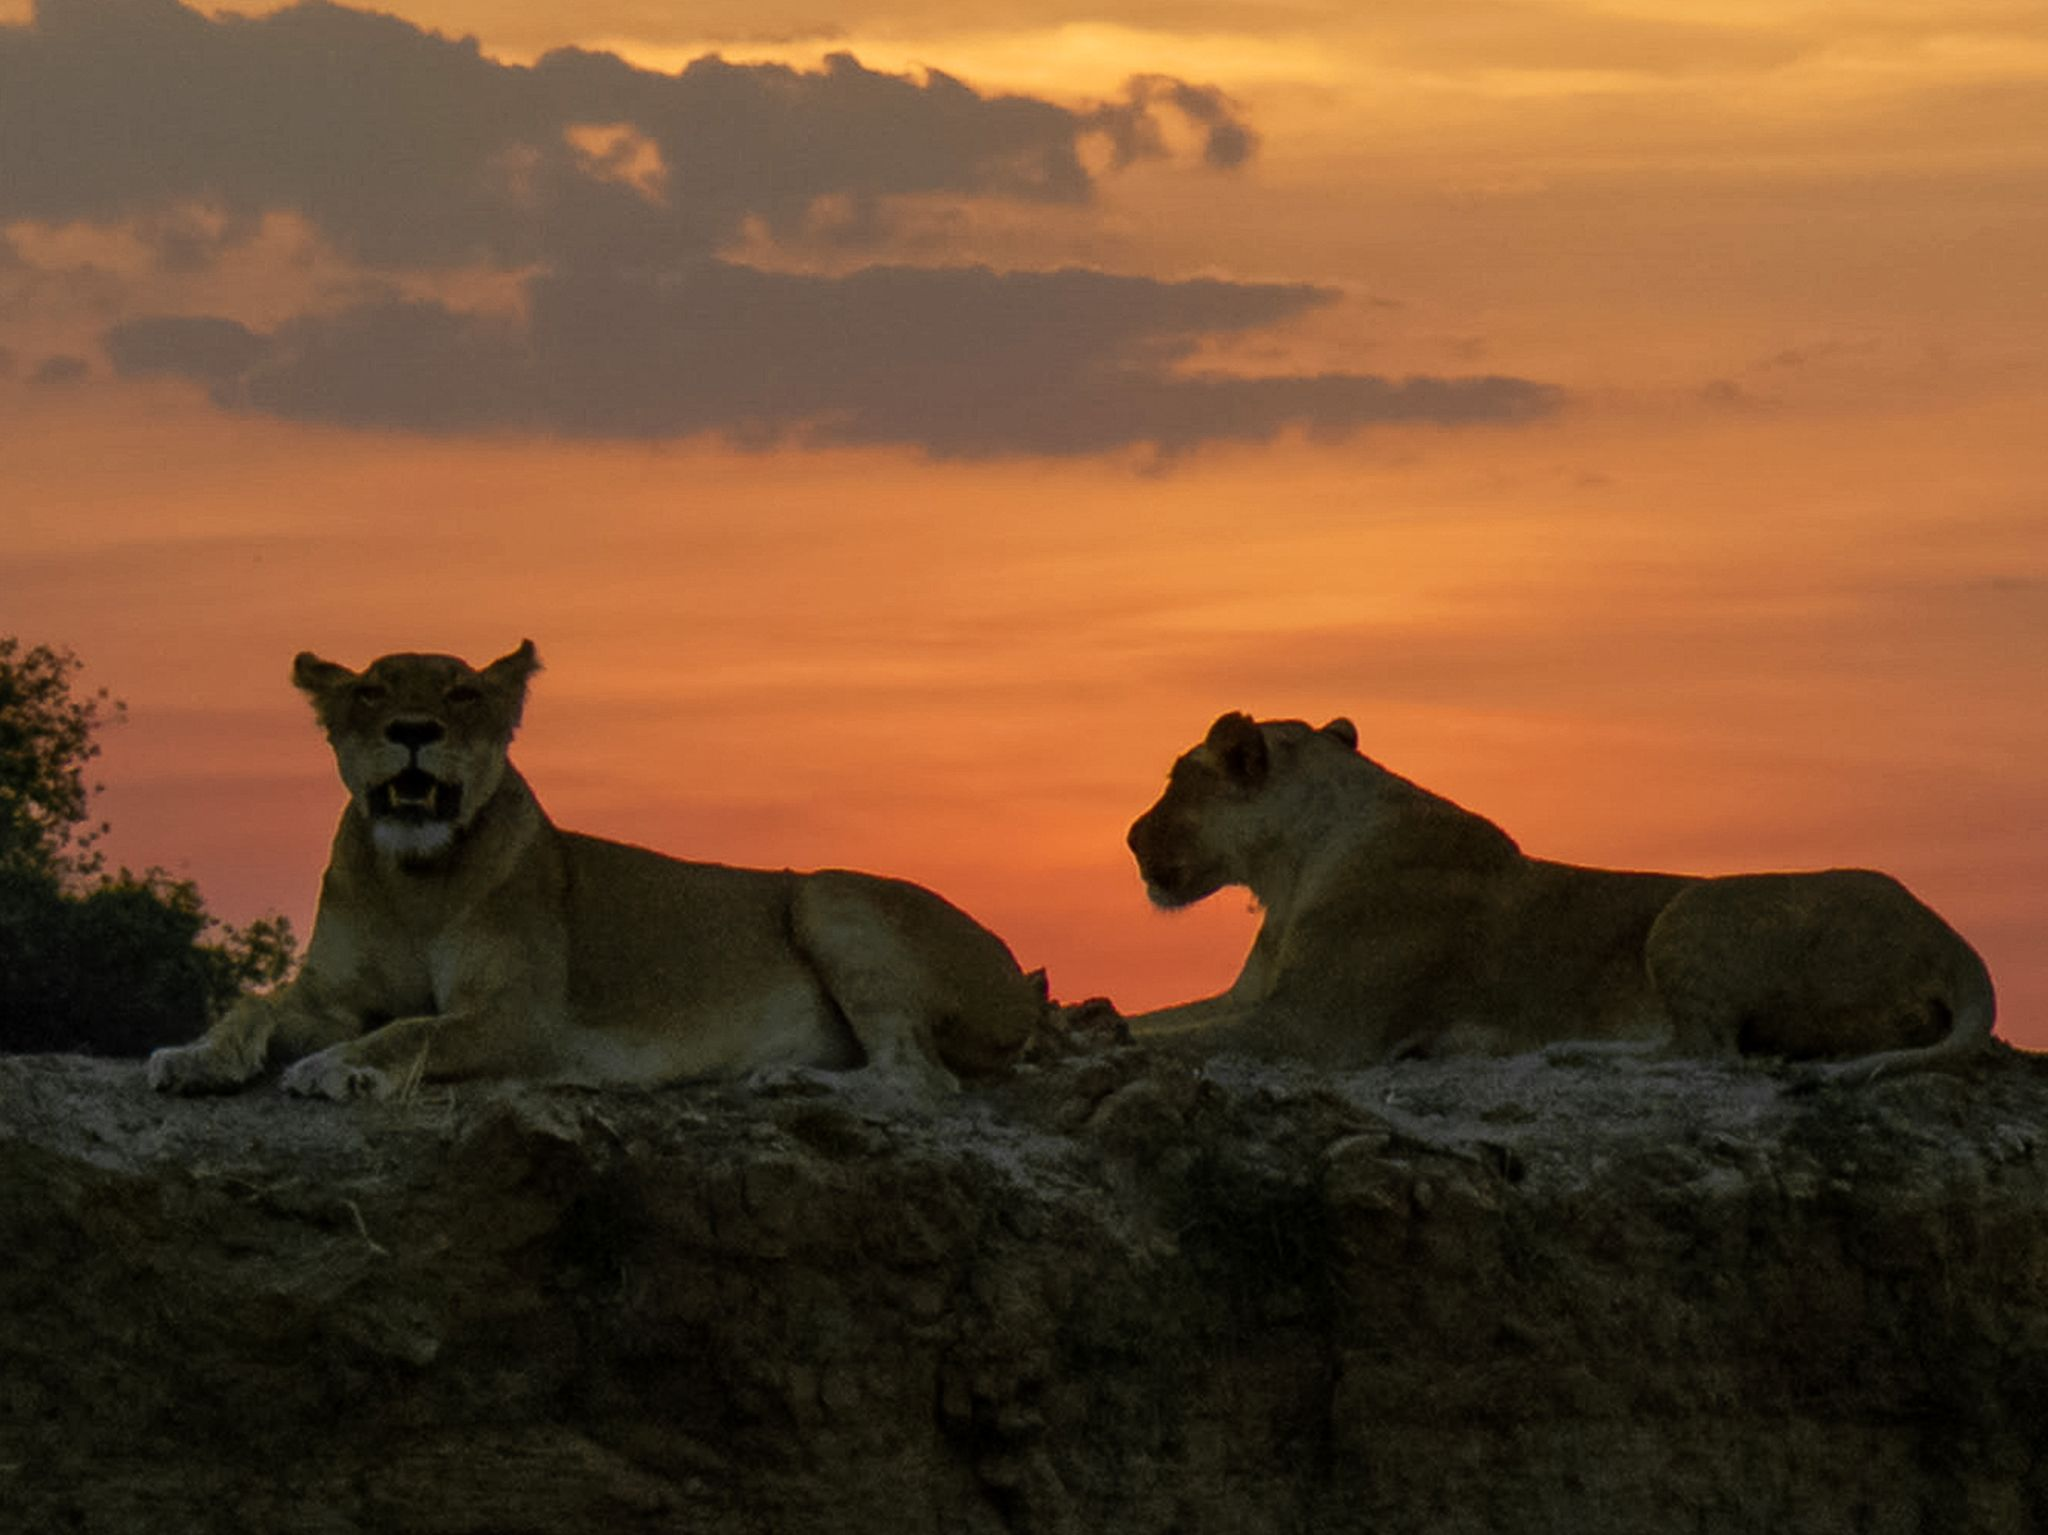 Two lionesses resting on top of river bank at sunset.  This image is from Predator Land. [Photo of the day - June 2020]